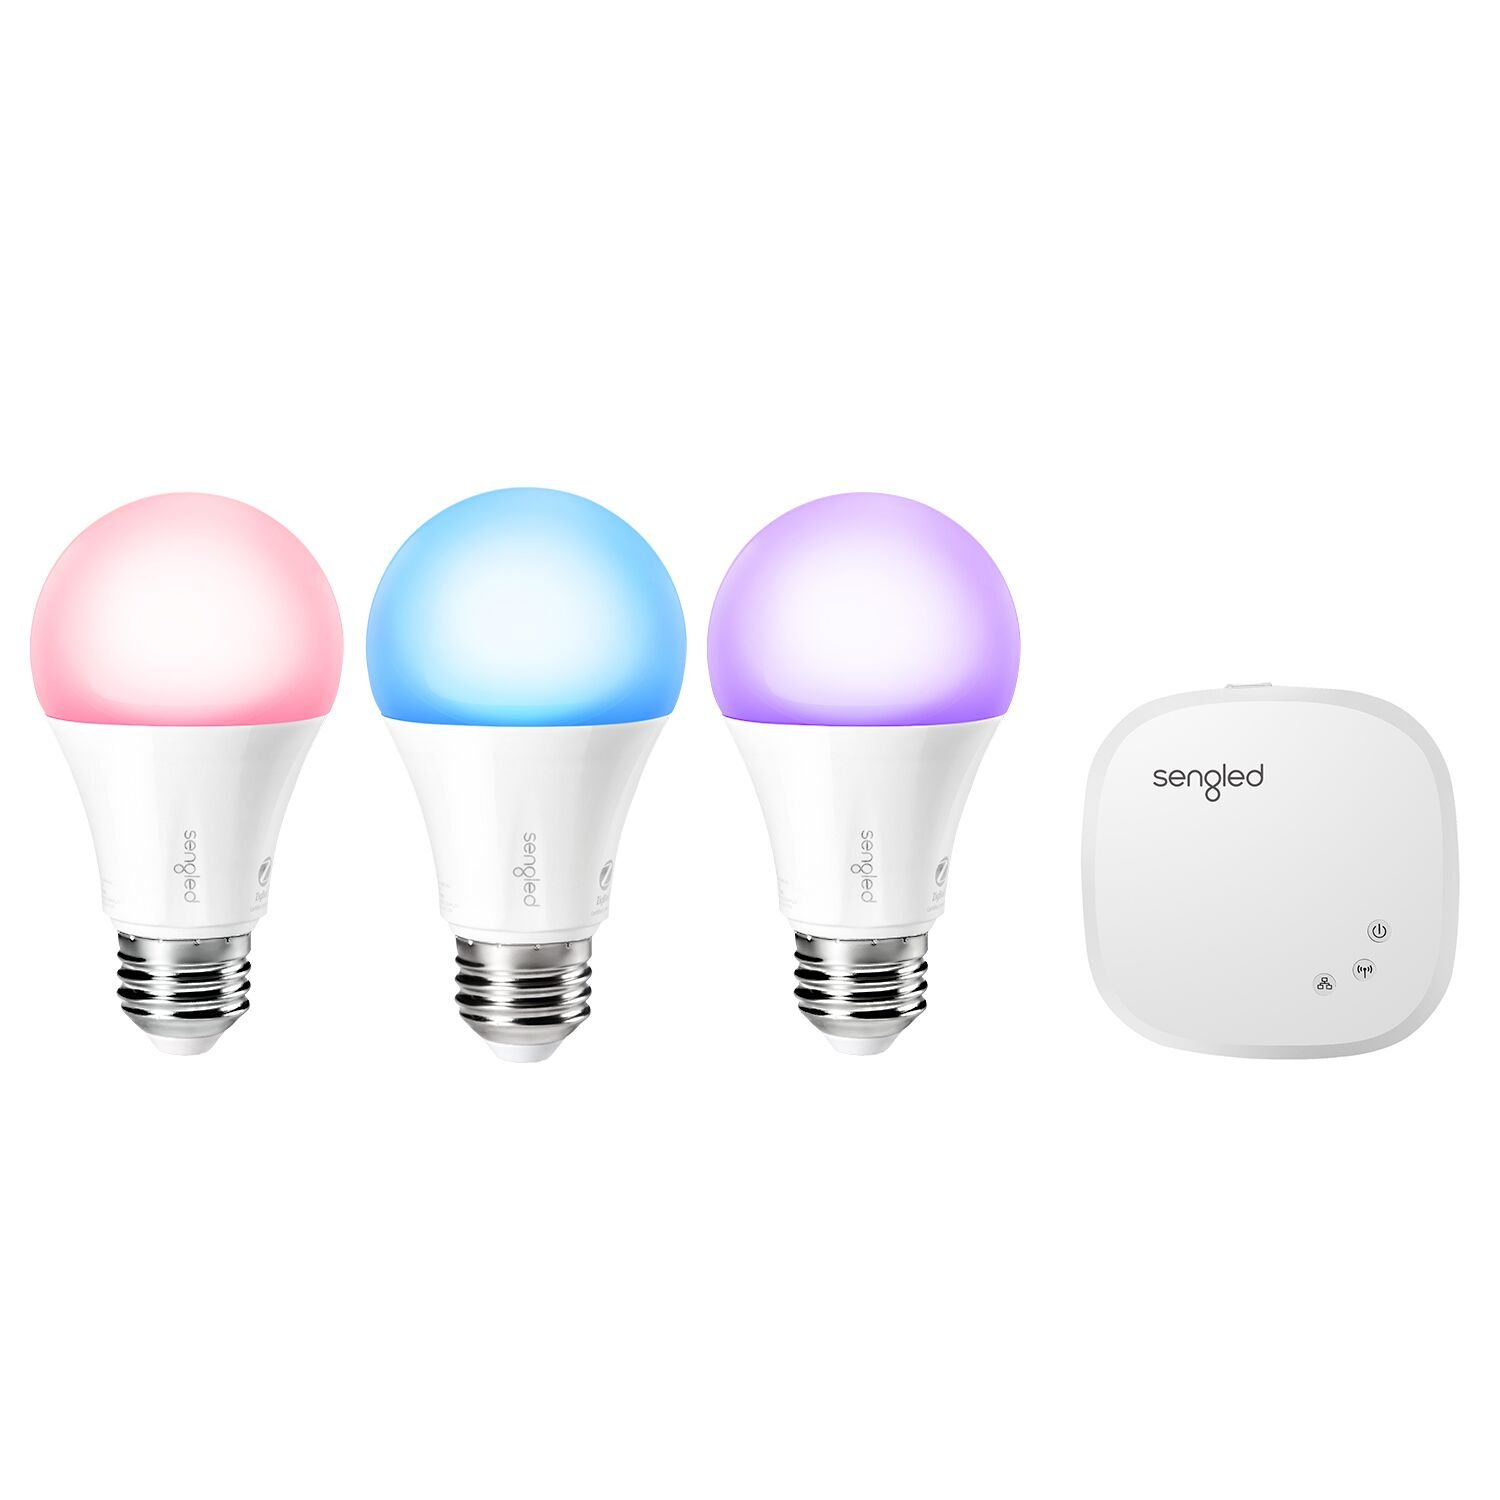 Sengled Element Color Plus Smart Bulb Starter Kit, Control up to 64 Bulbs, 16 Million Color Output, Tunable Warm White to Daylight (2000K - 6500K), Compatible with Alexa and Google Assistant(3 Pack)